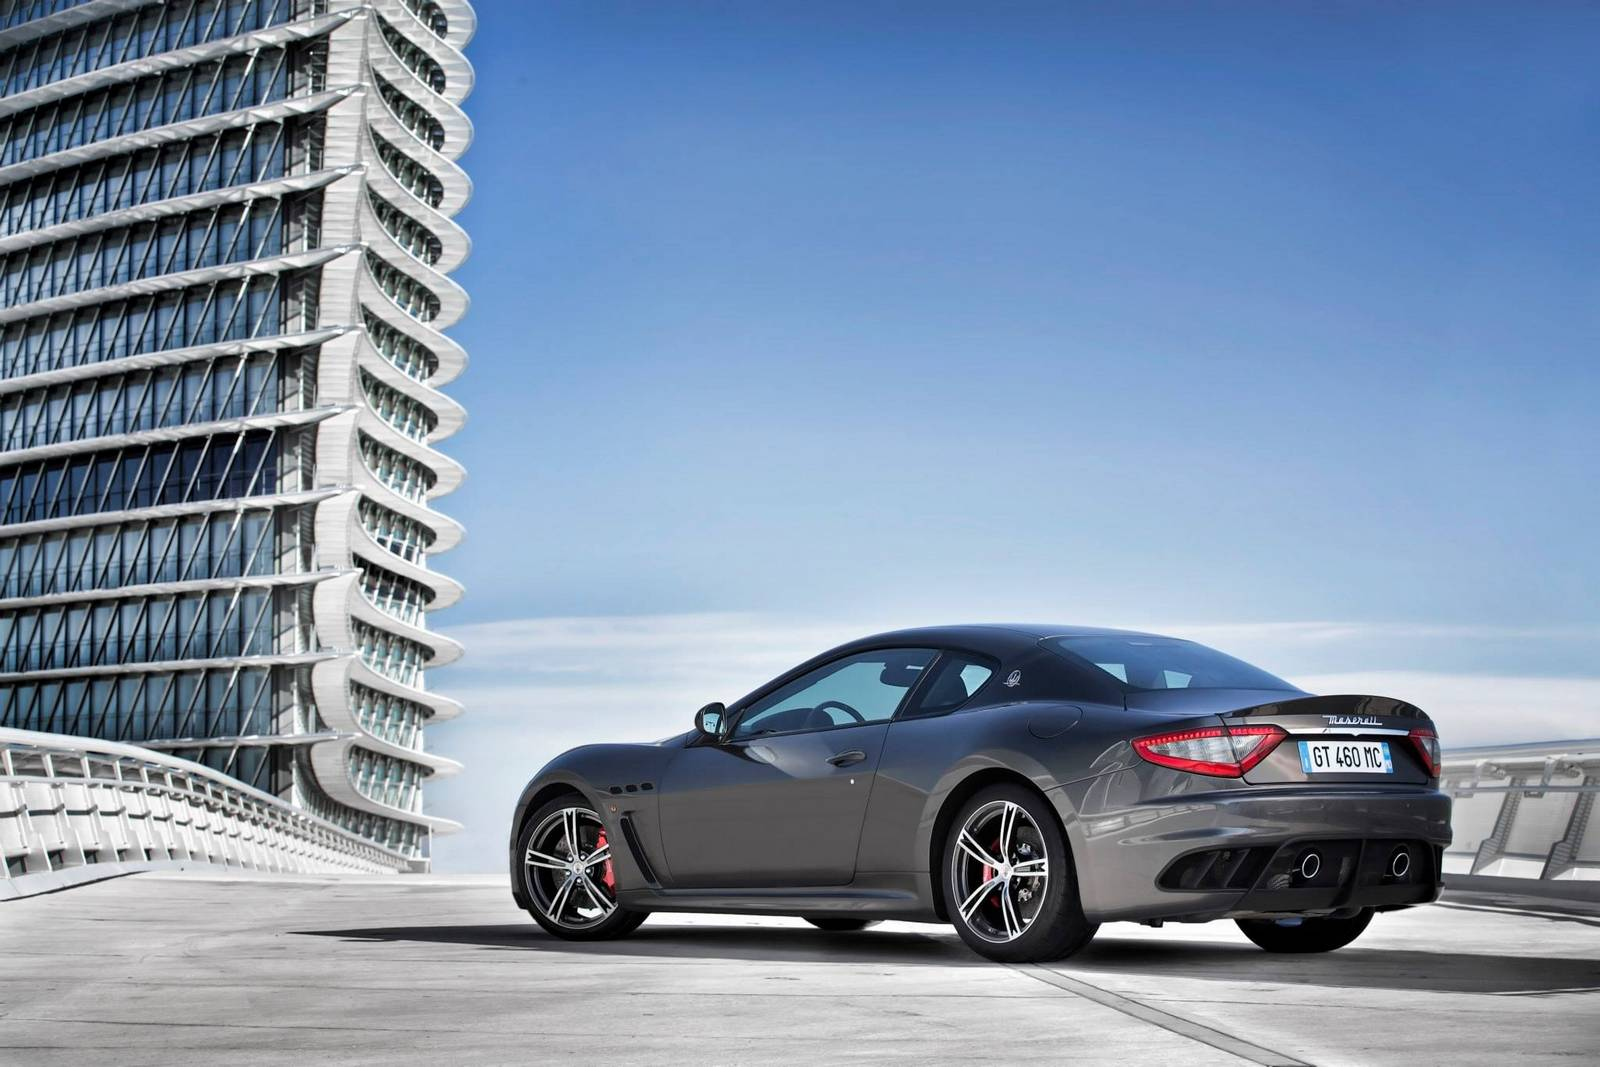 Next Gen Maserati GranTurismo Arriving In 2018